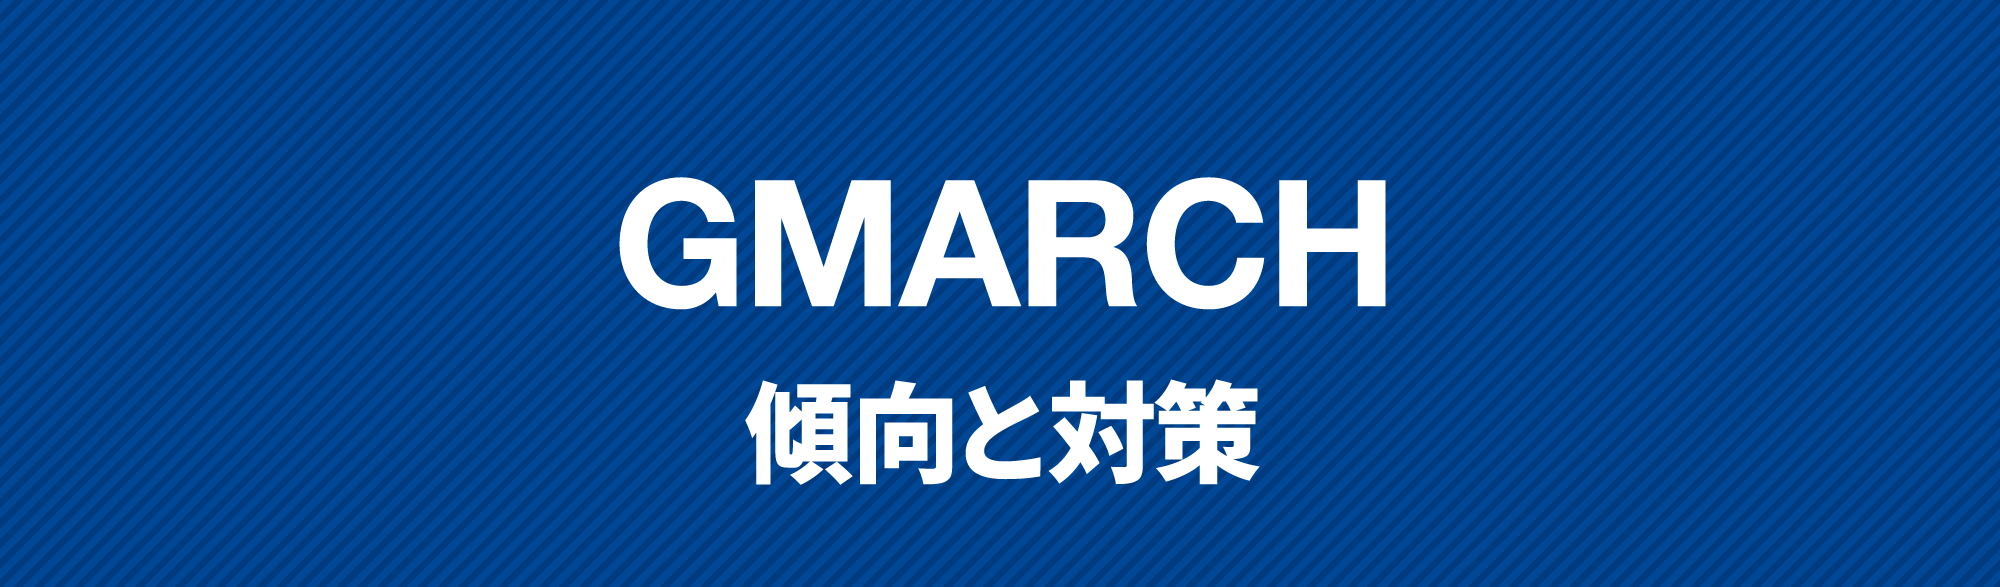 GMARCH勉強法